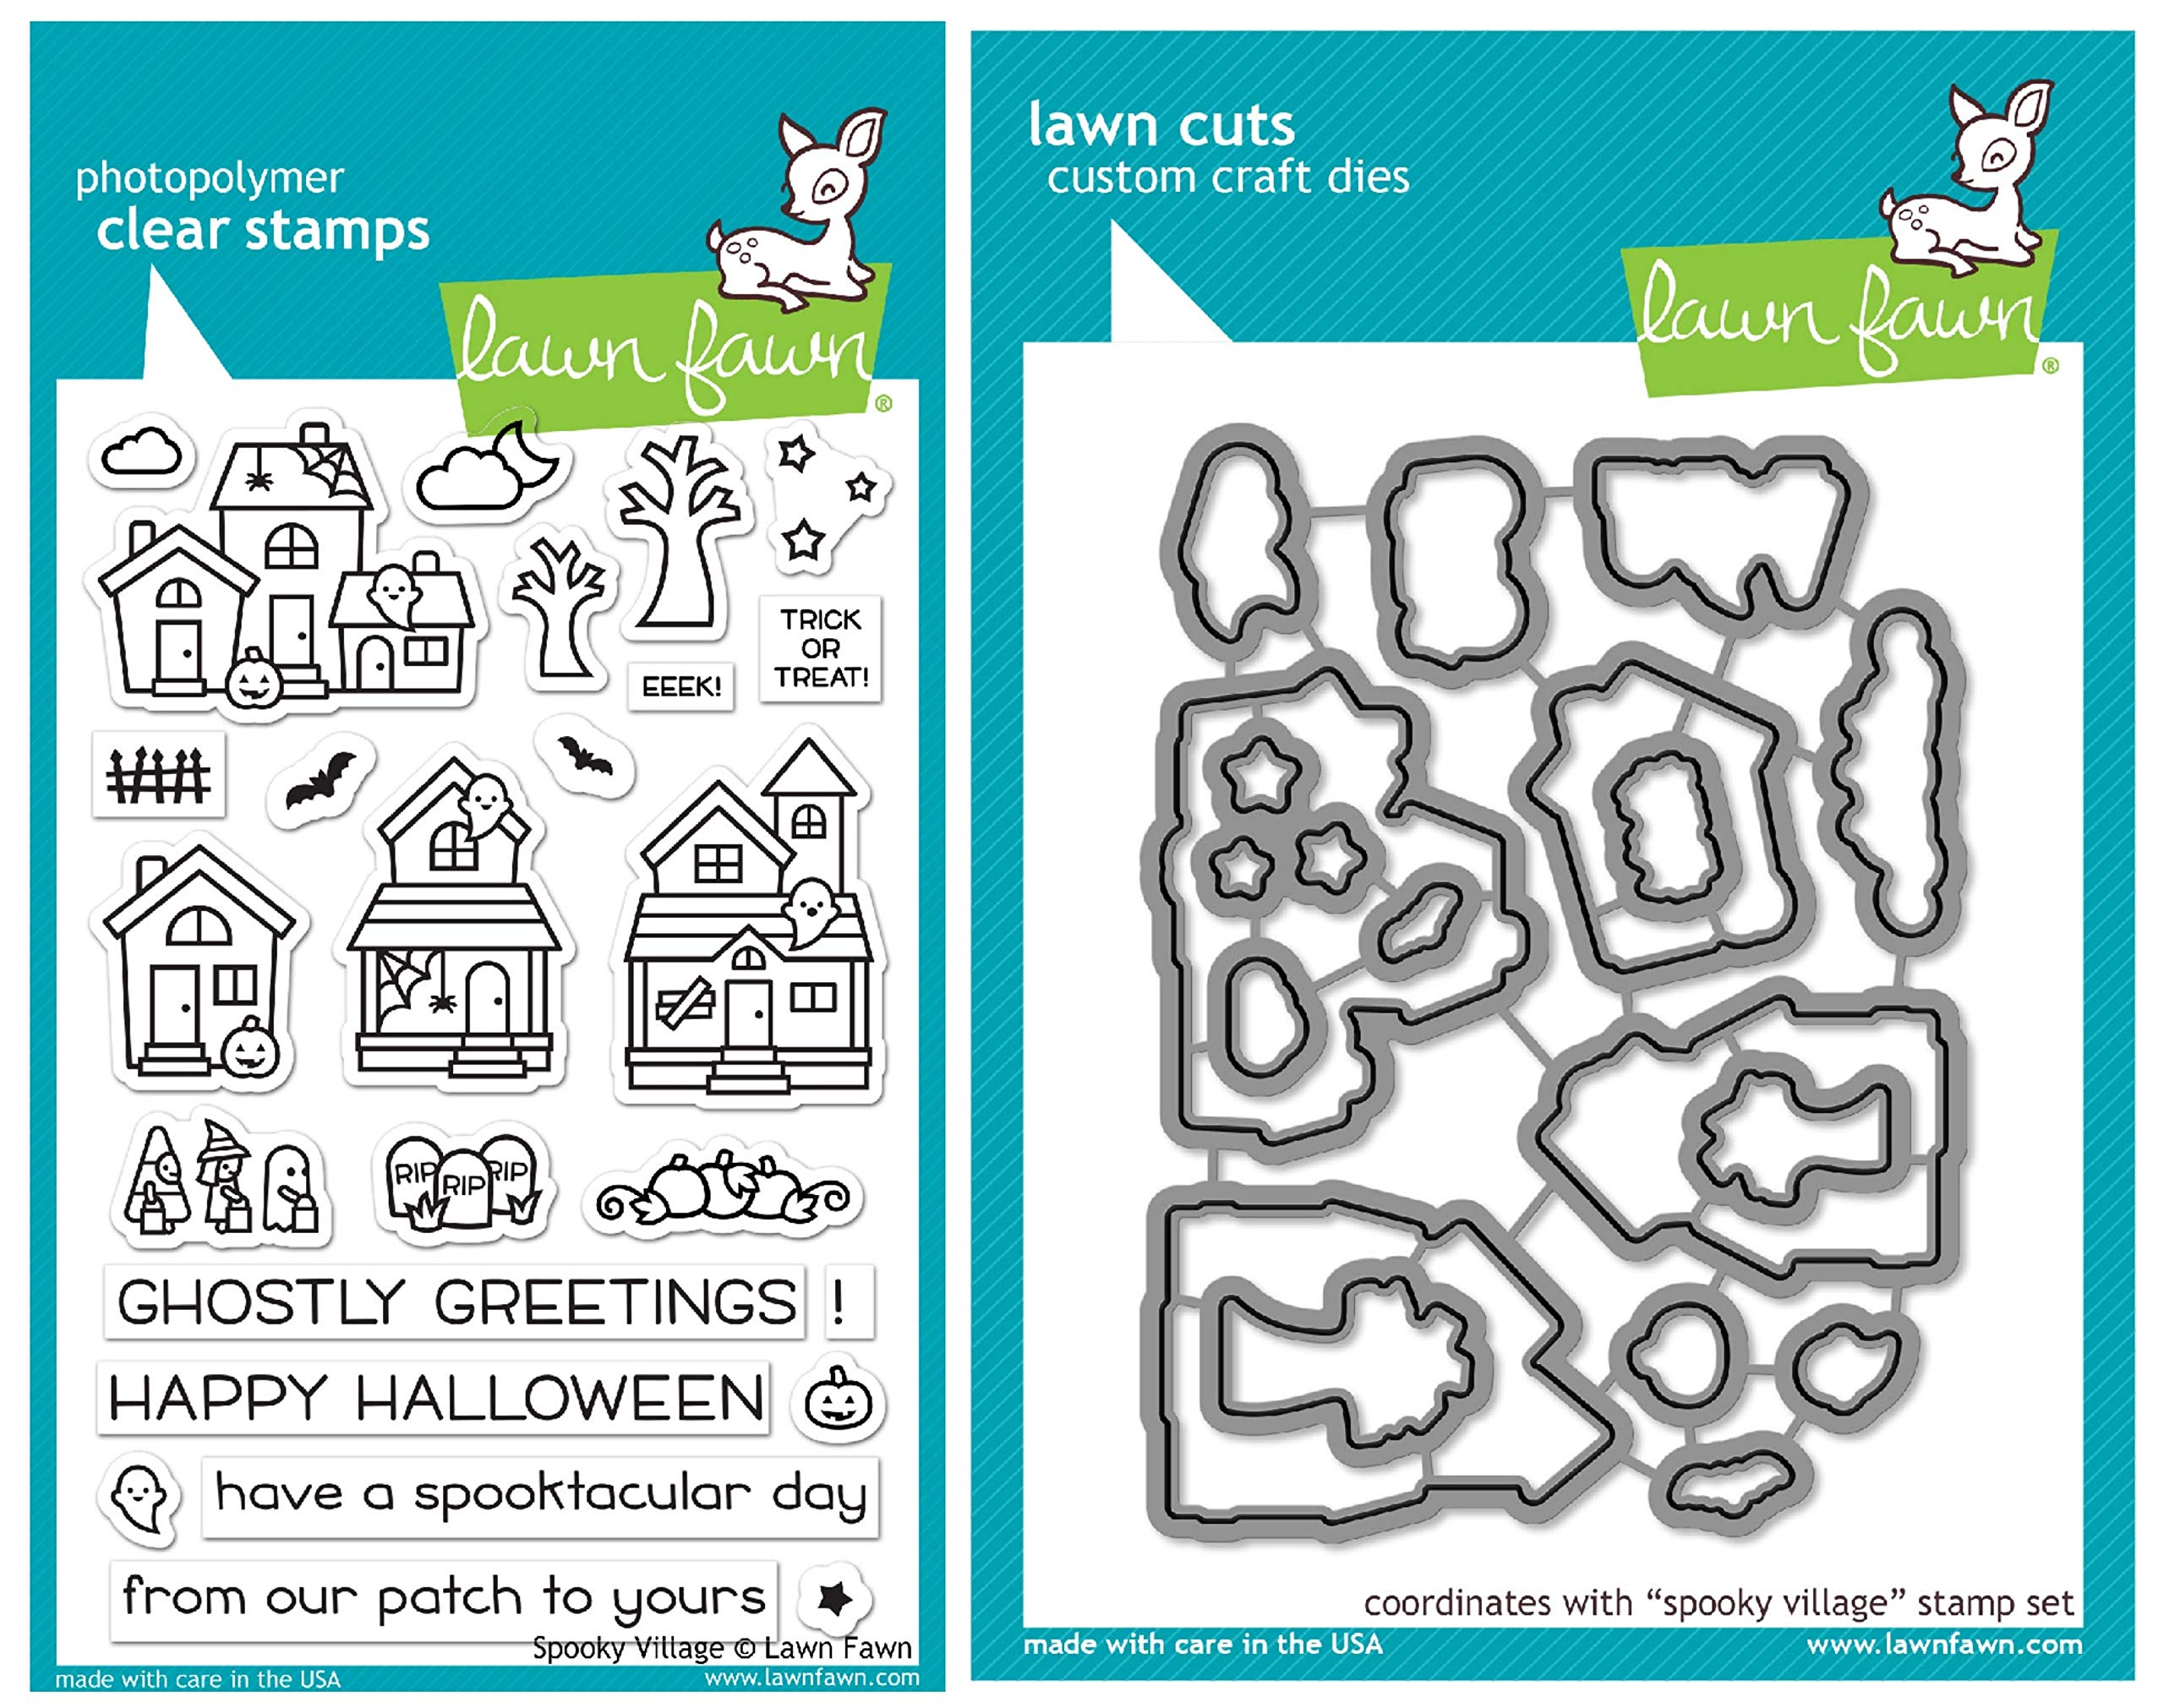 Lawn Fawn Spooky Village Clear Stamps and Coordinating Die Set (LF2014, LF2015), Bundle of 2 Items